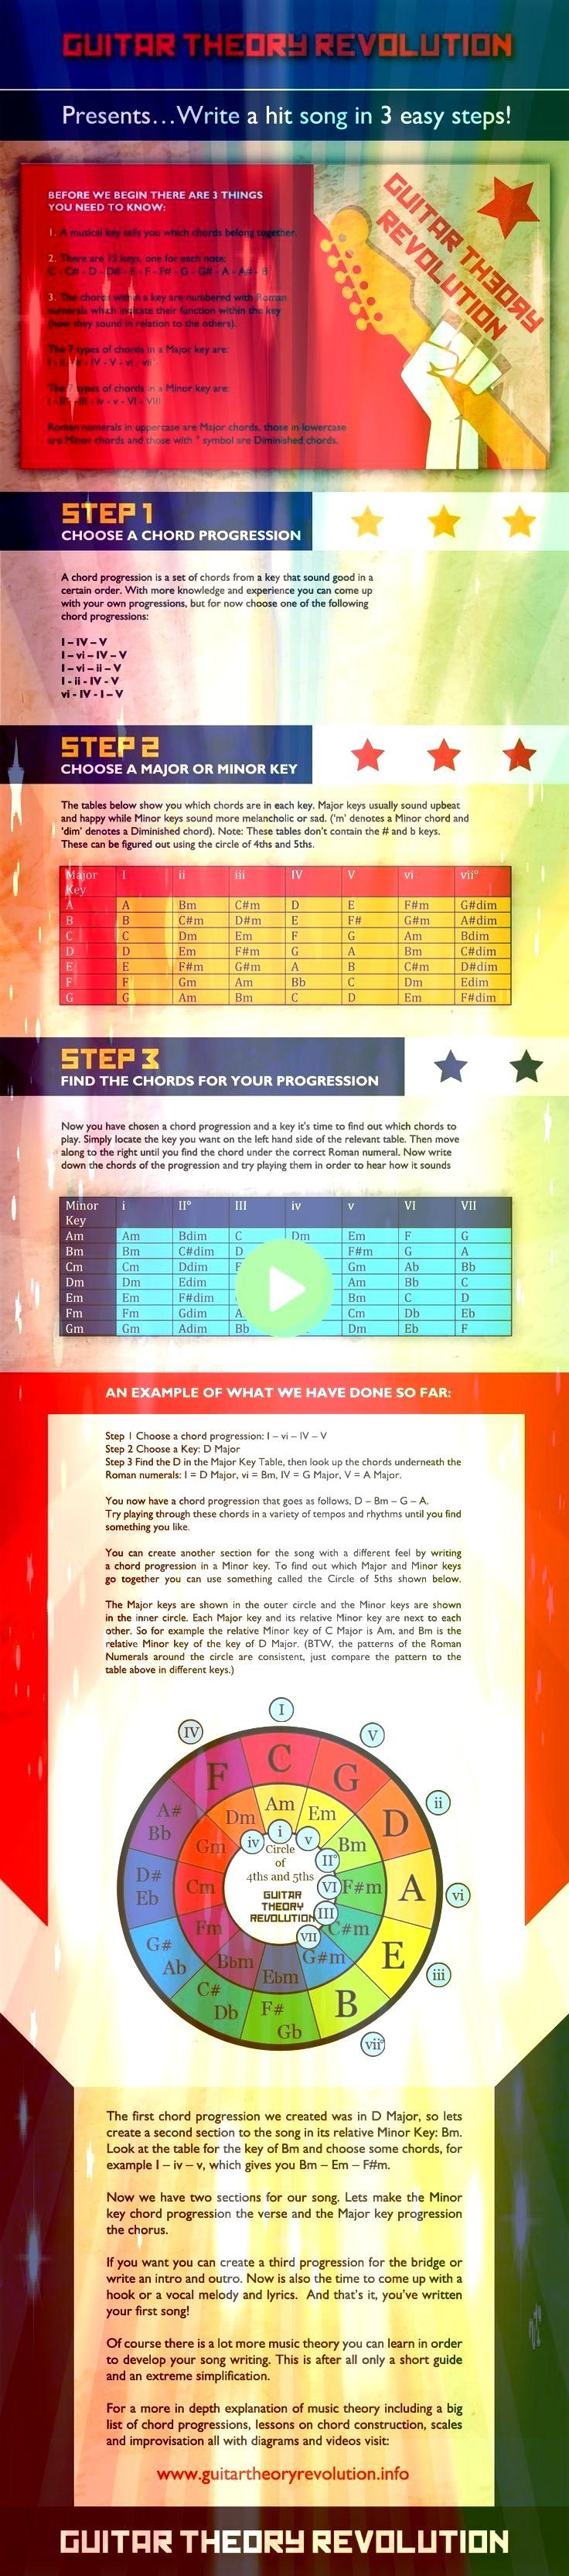 How How POSTER Poster FRONT view Paper color Walrus Productions Guitar Progressions Chord Chart 16 Basic Ukulele Chords  16 คอรดพนฐานอคเลเล XD Love it too much A great ch...